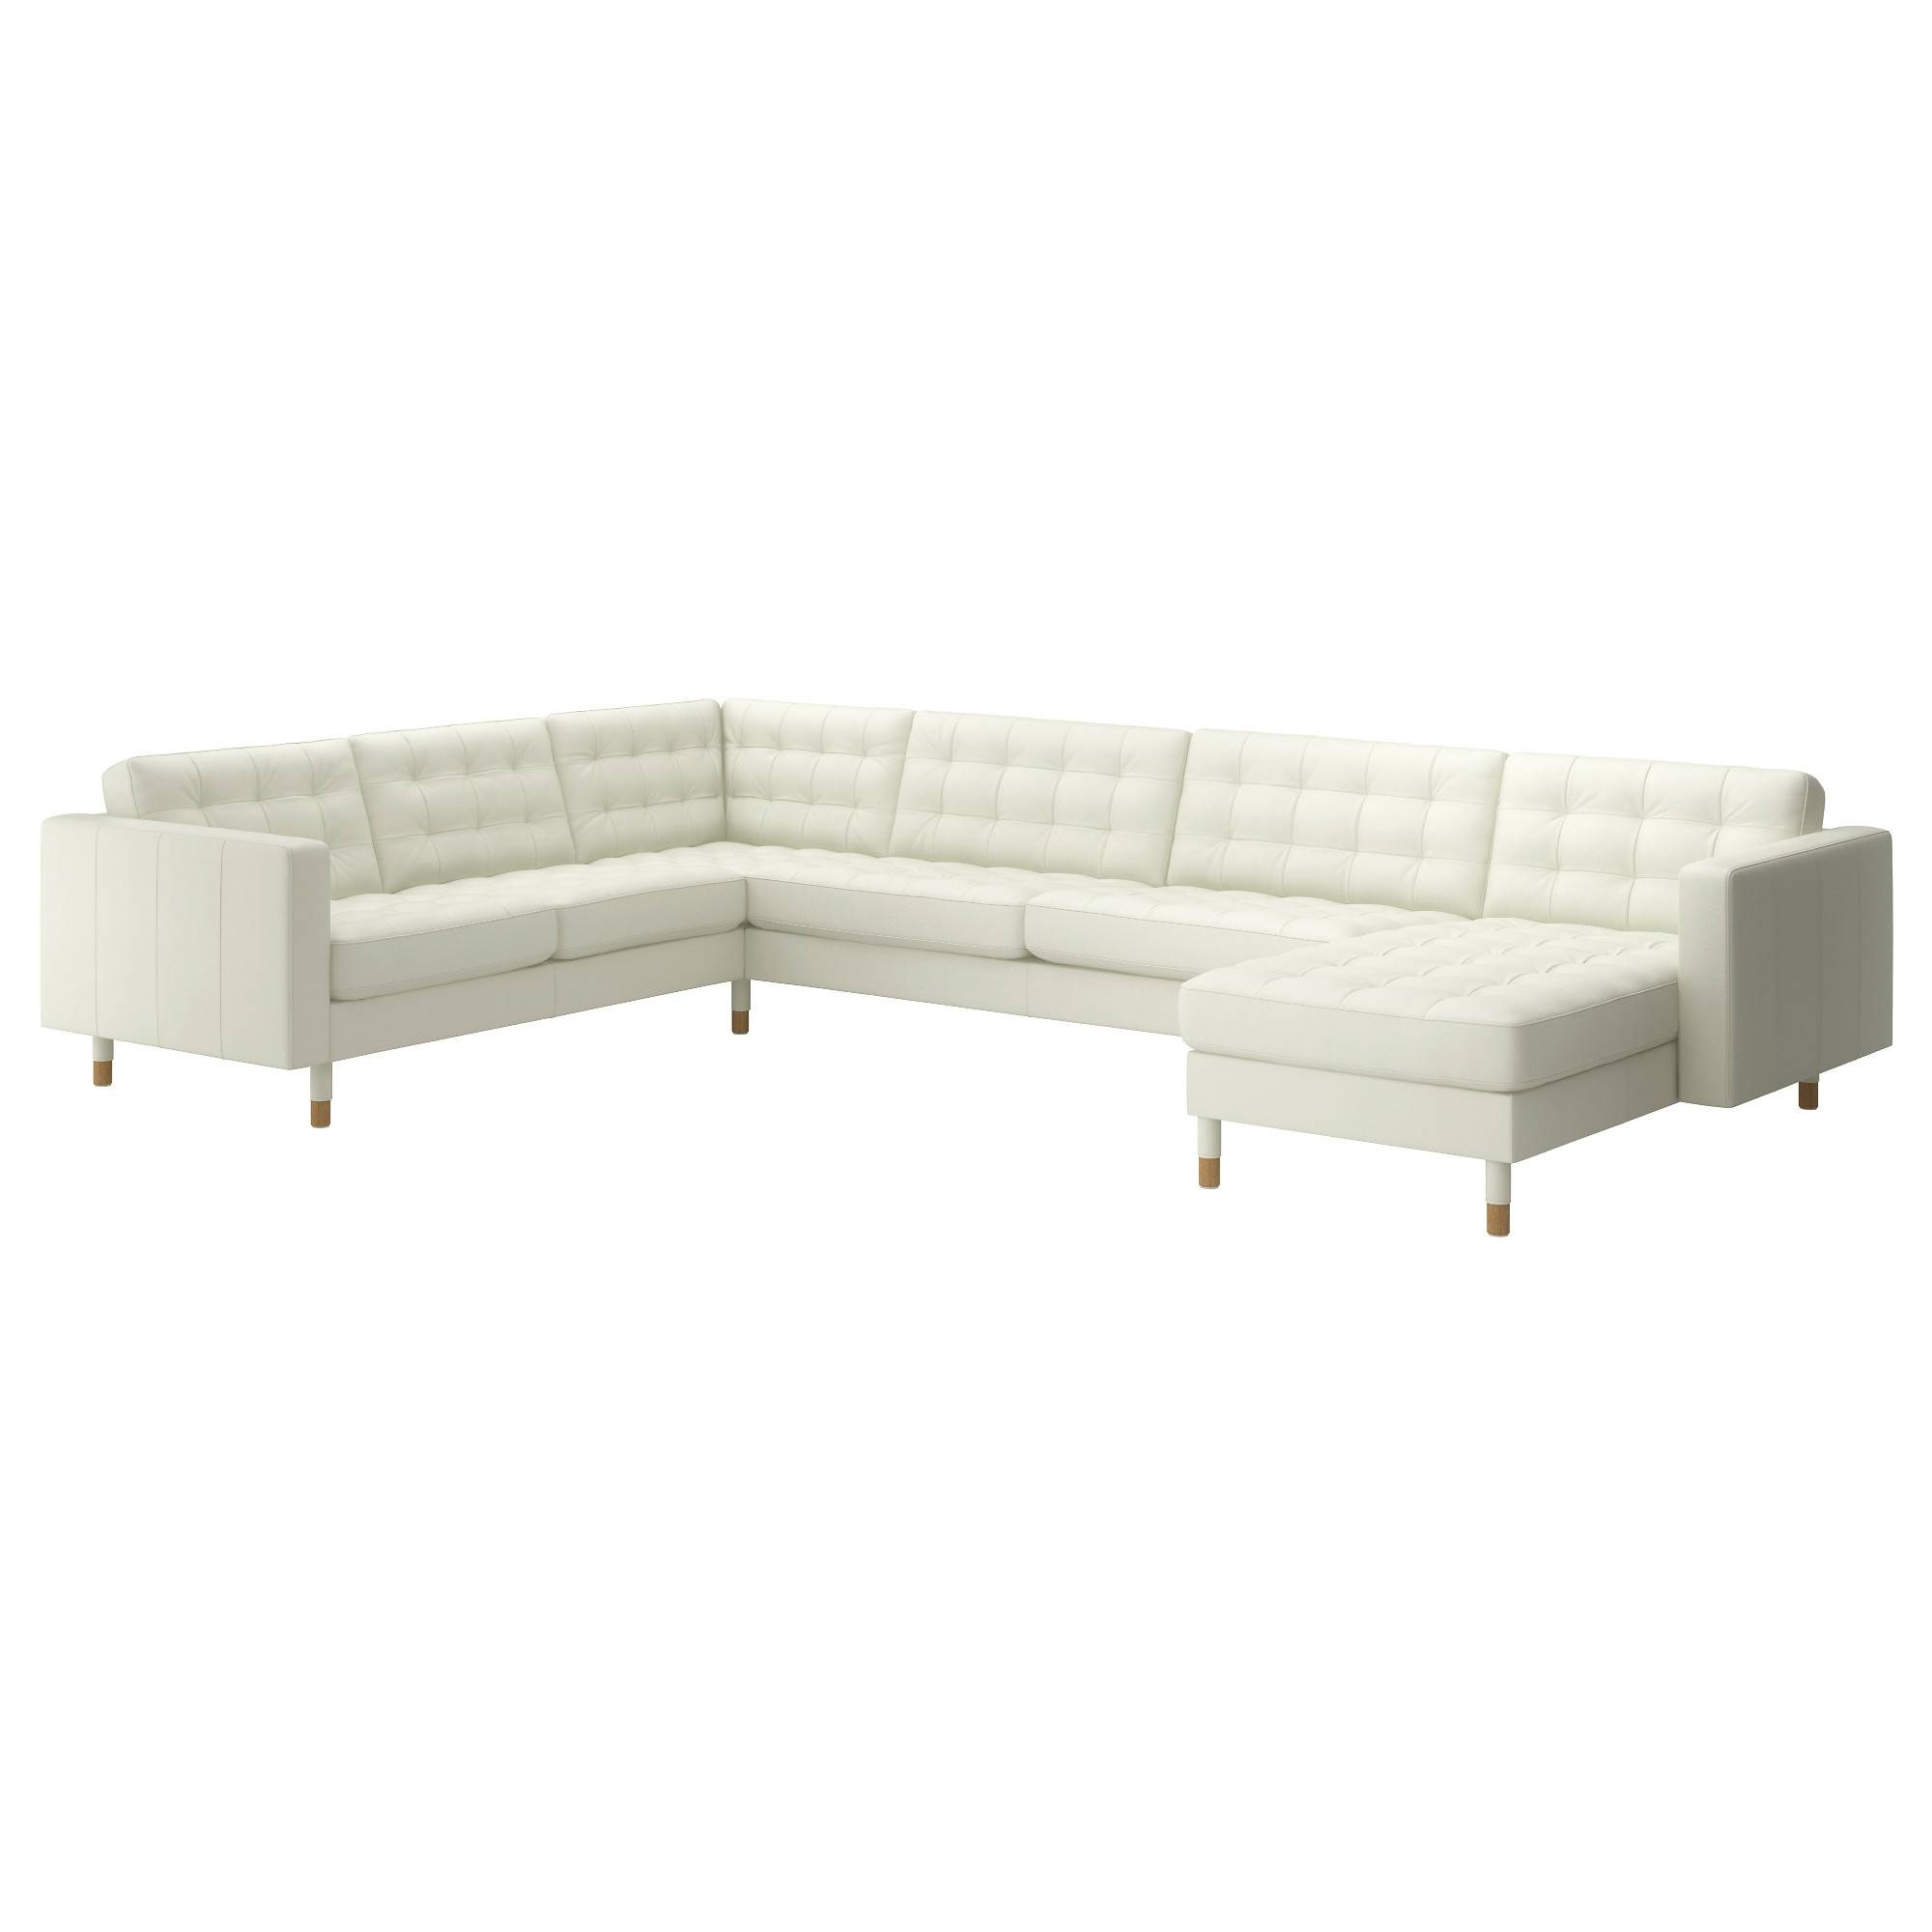 Sectional Sofas & Couches - Ikea inside Small Modular Sectional Sofa (Image 16 of 25)